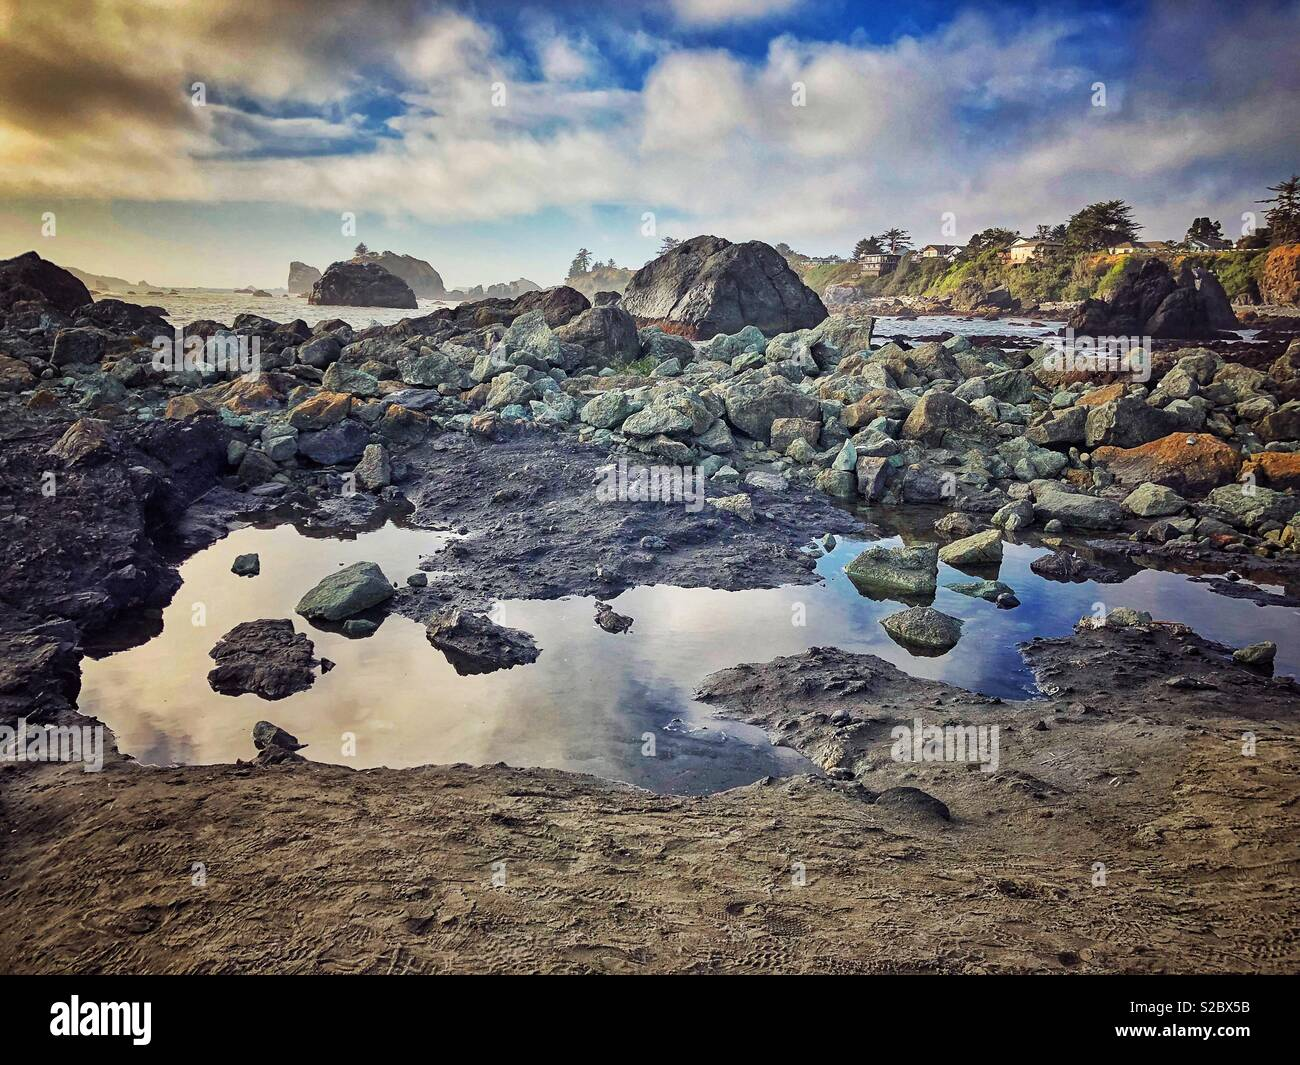 Tide pools along the rocky shore. - Stock Image